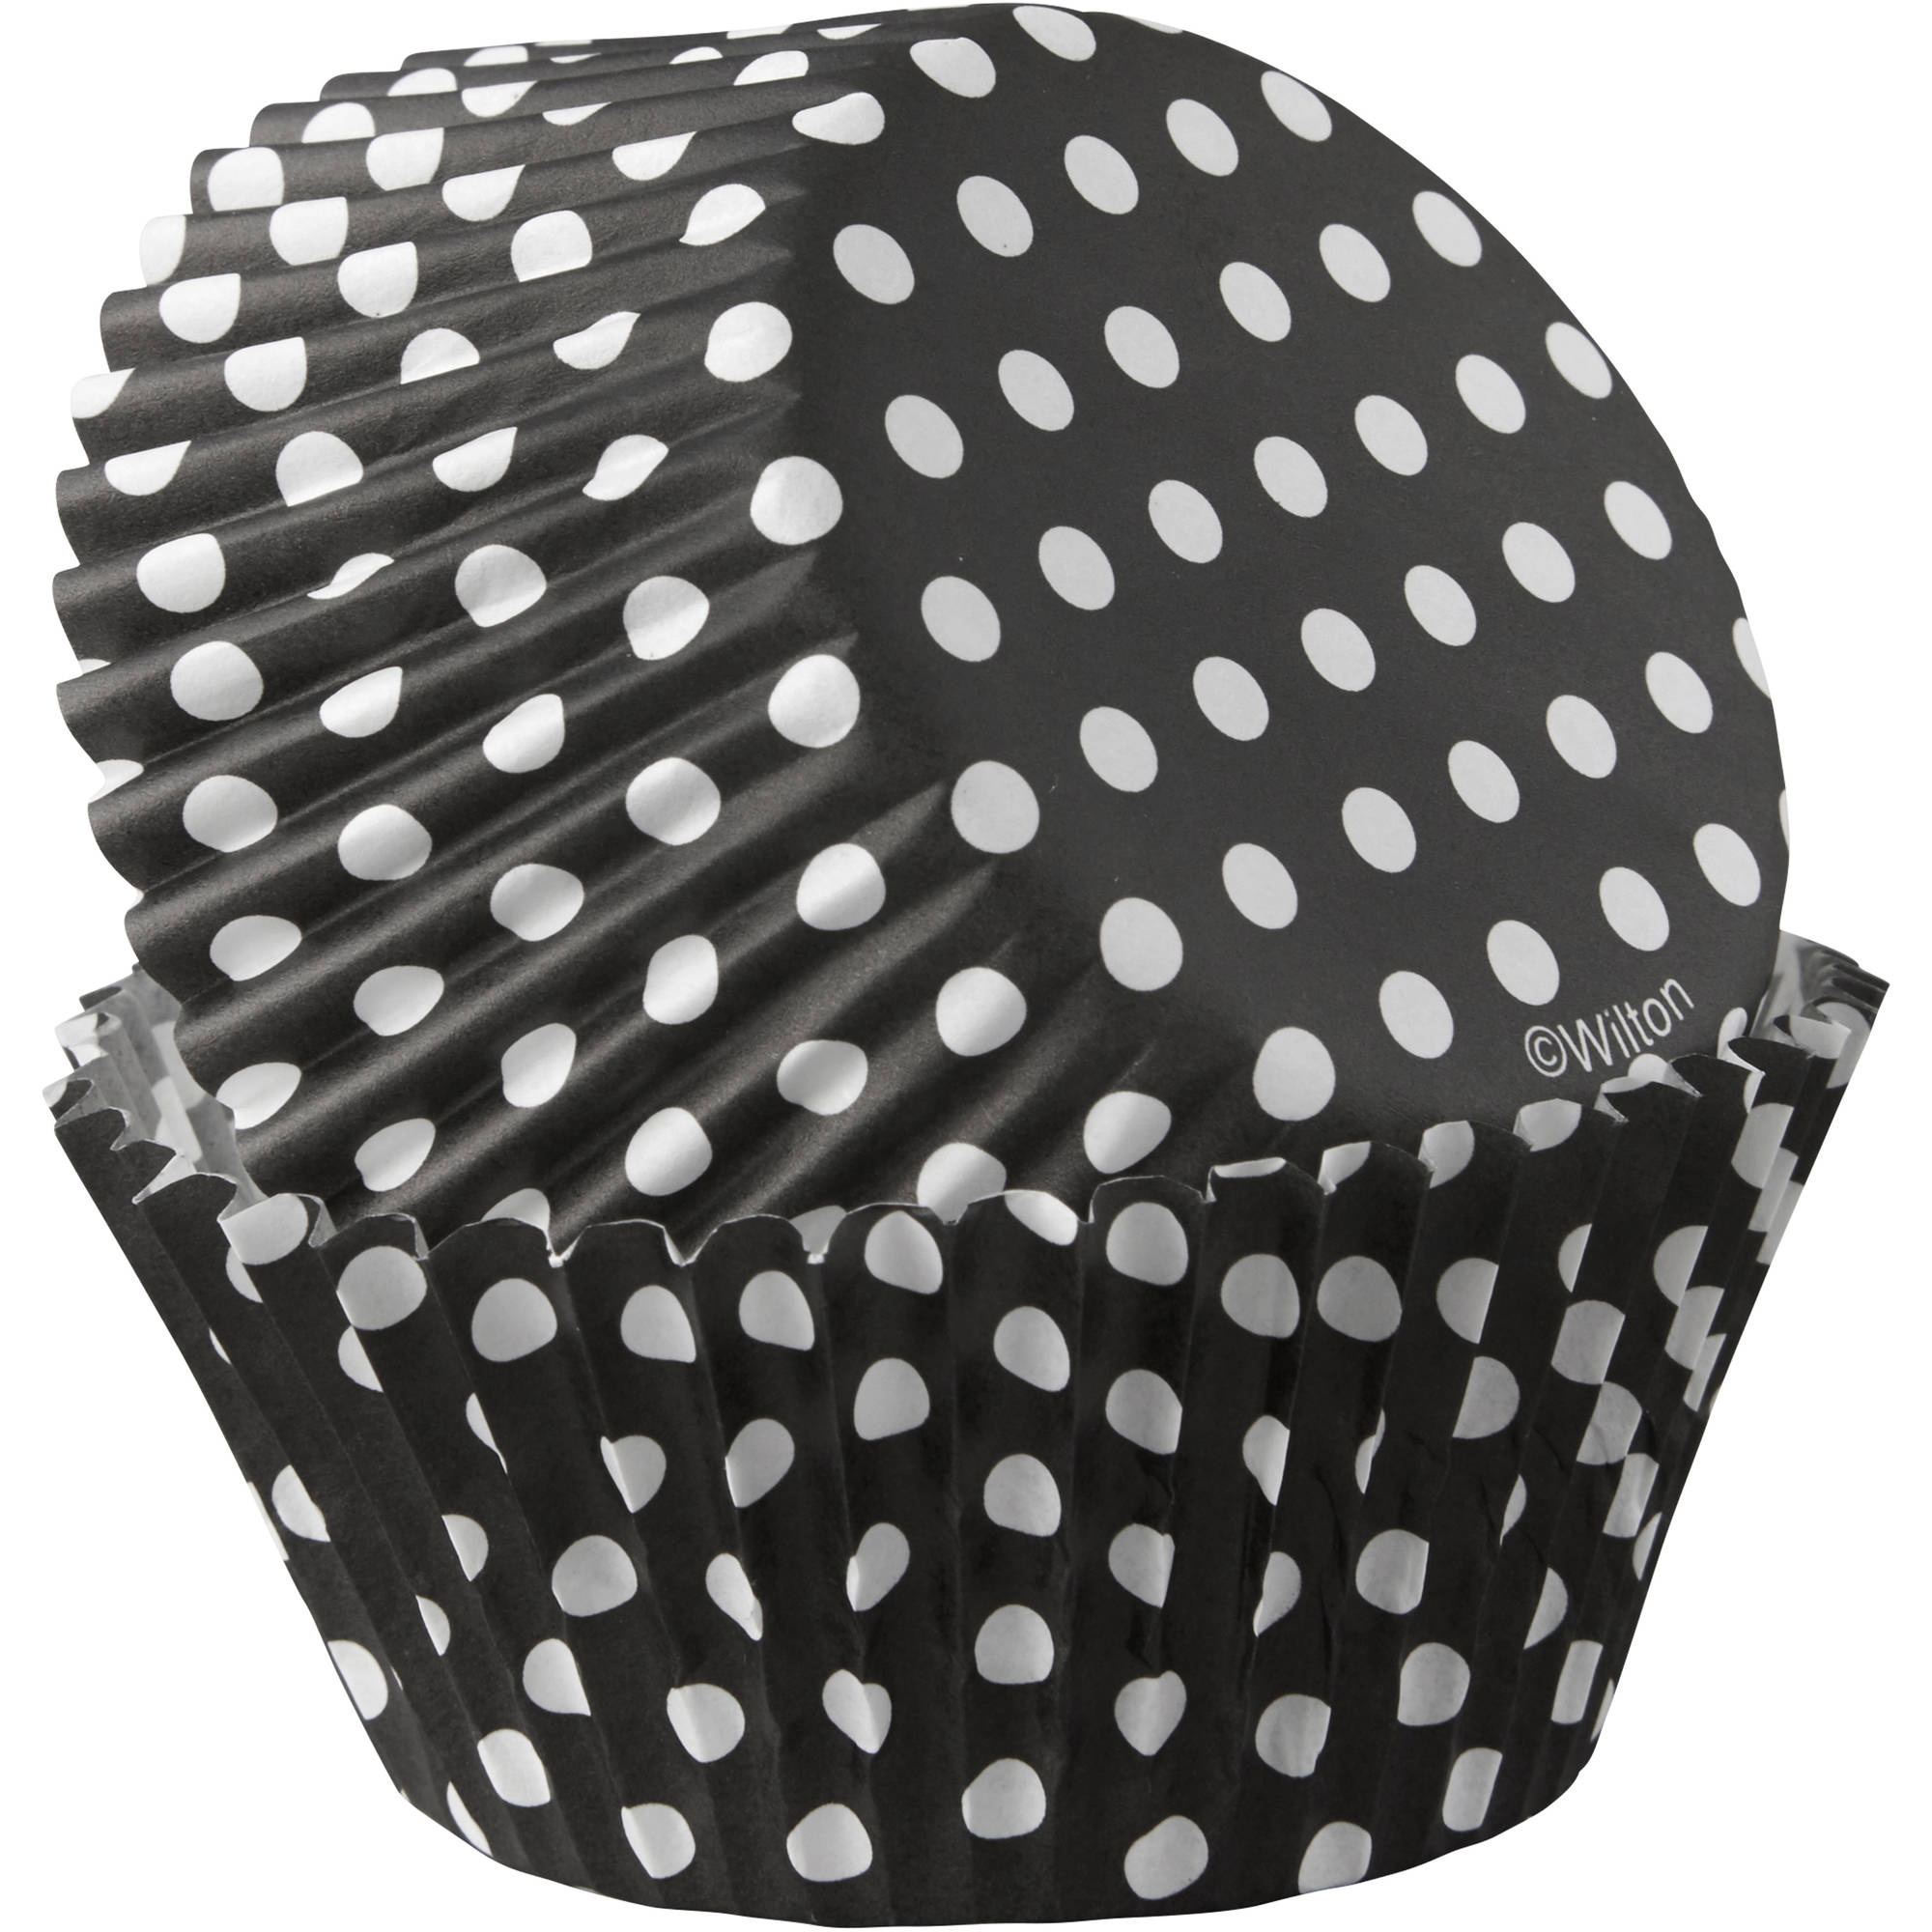 Wilton Standard Black Dots Baking Cups, 415-7023 415-7023